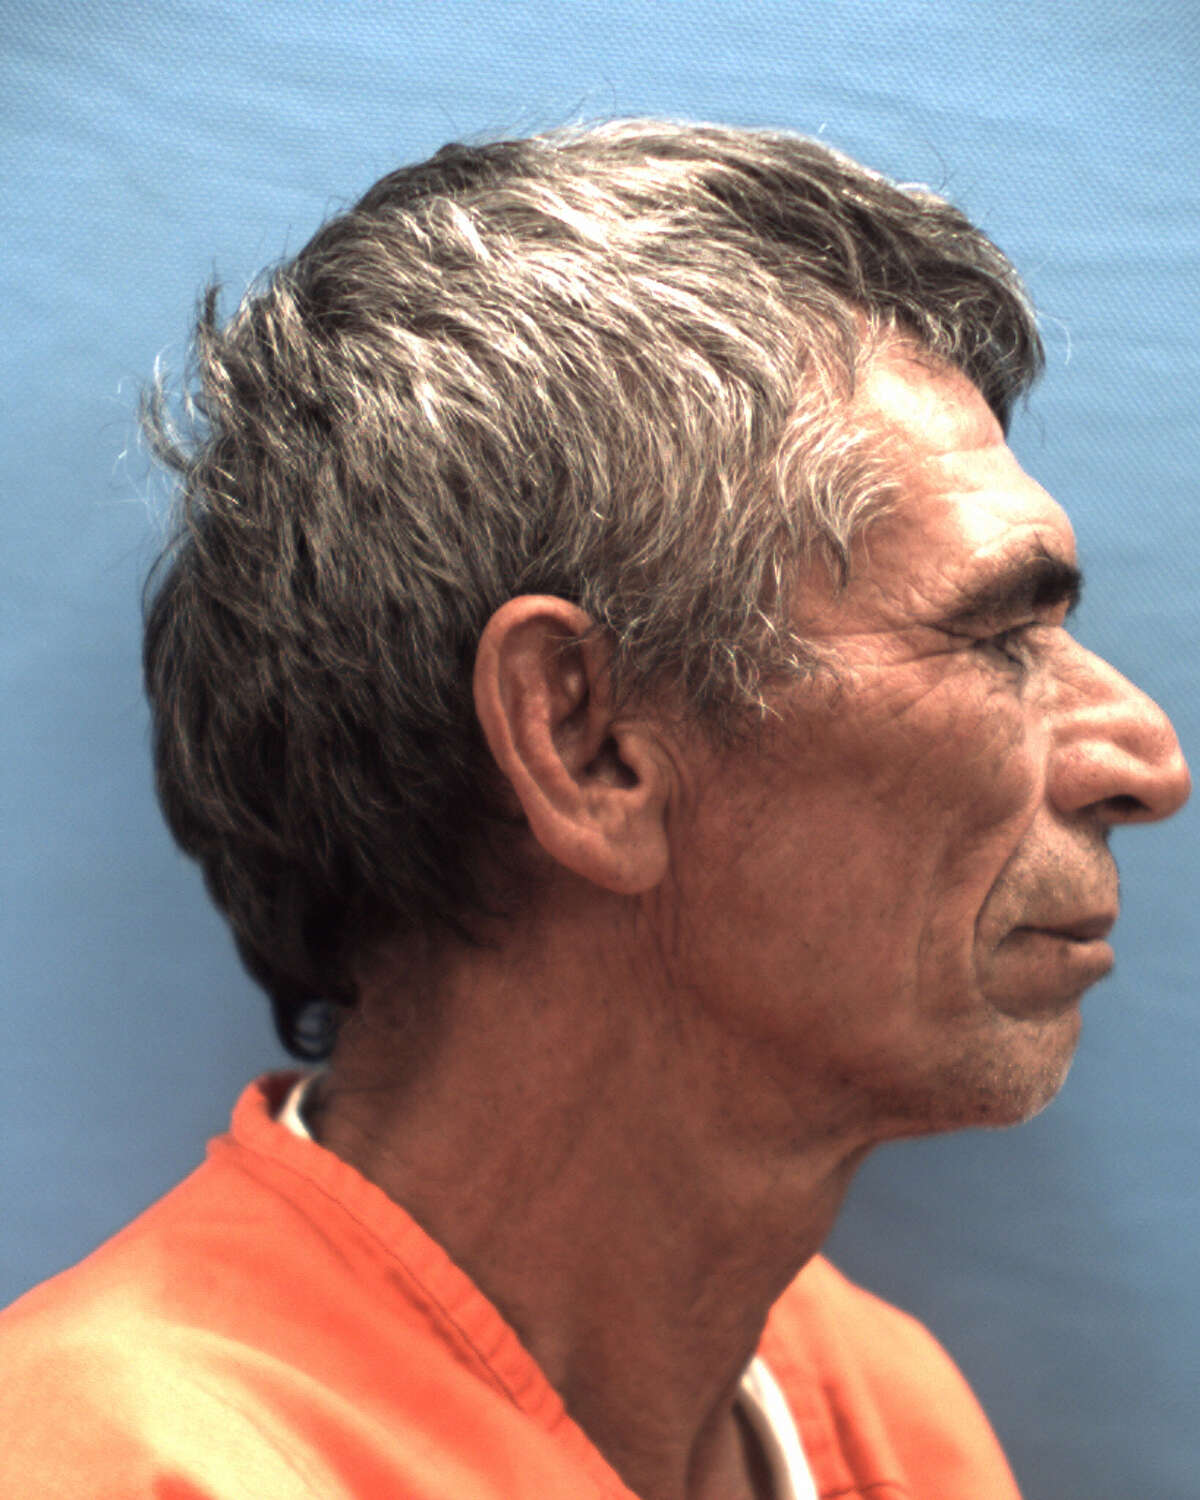 A 61-year-old San Marcos man pleaded guilty Monday to engaging in prohibited sexual conduct with his niece whom he later married. Esteban Chavez Castillo will serve 17 years in prison, the Seguin Gazette reported.